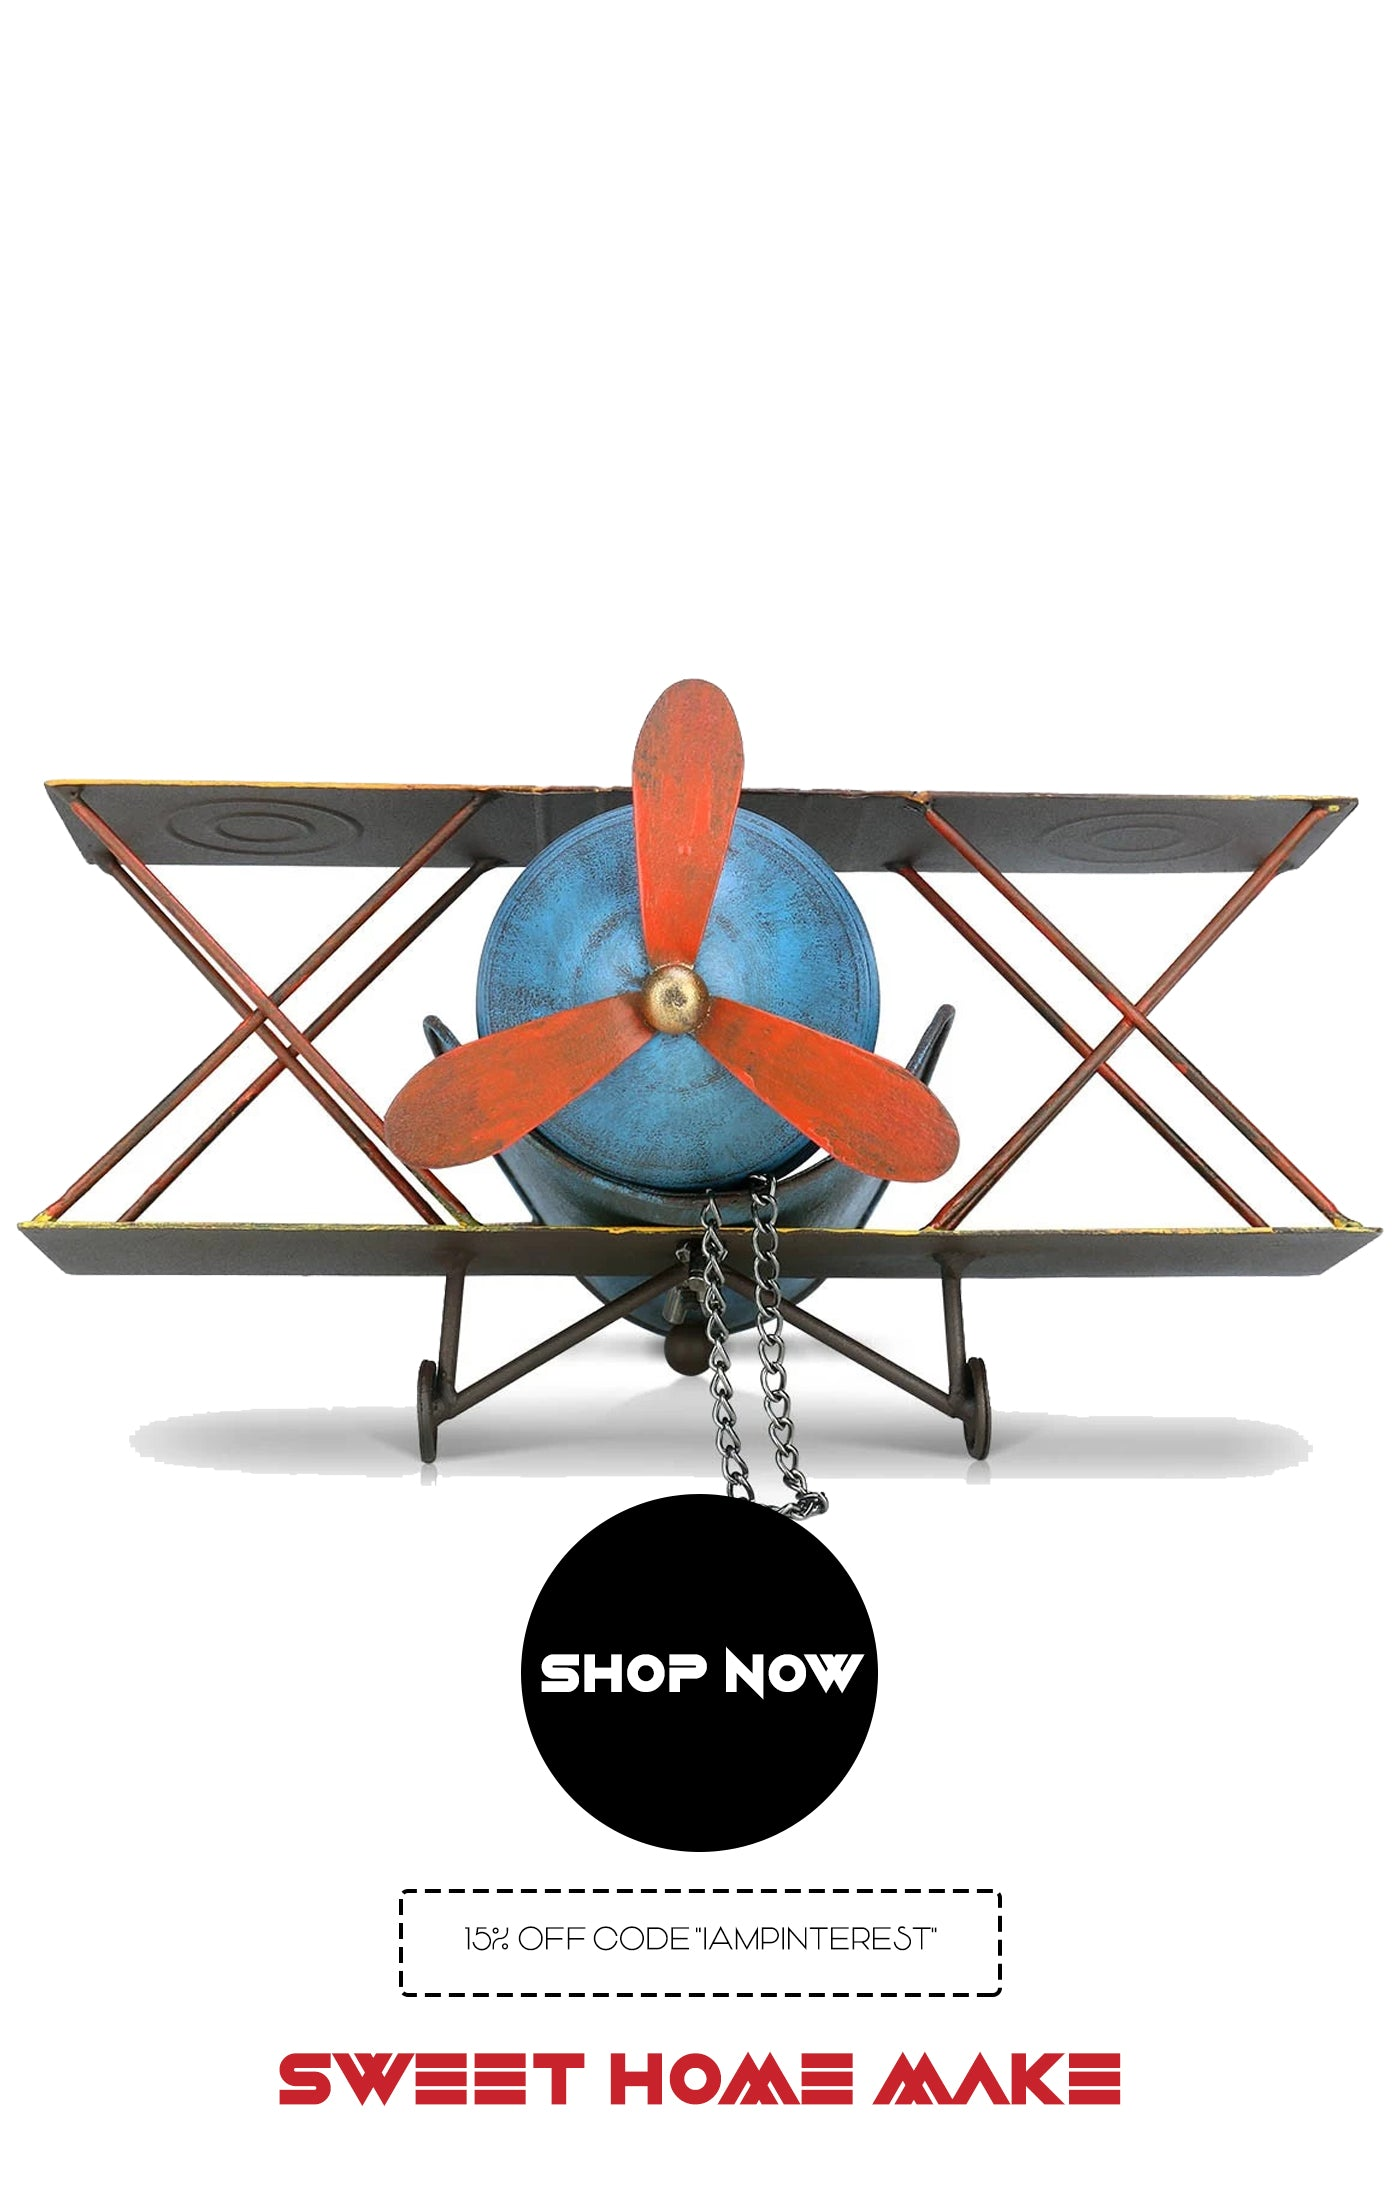 Toy Airplanes For Home Decor and Ornaments